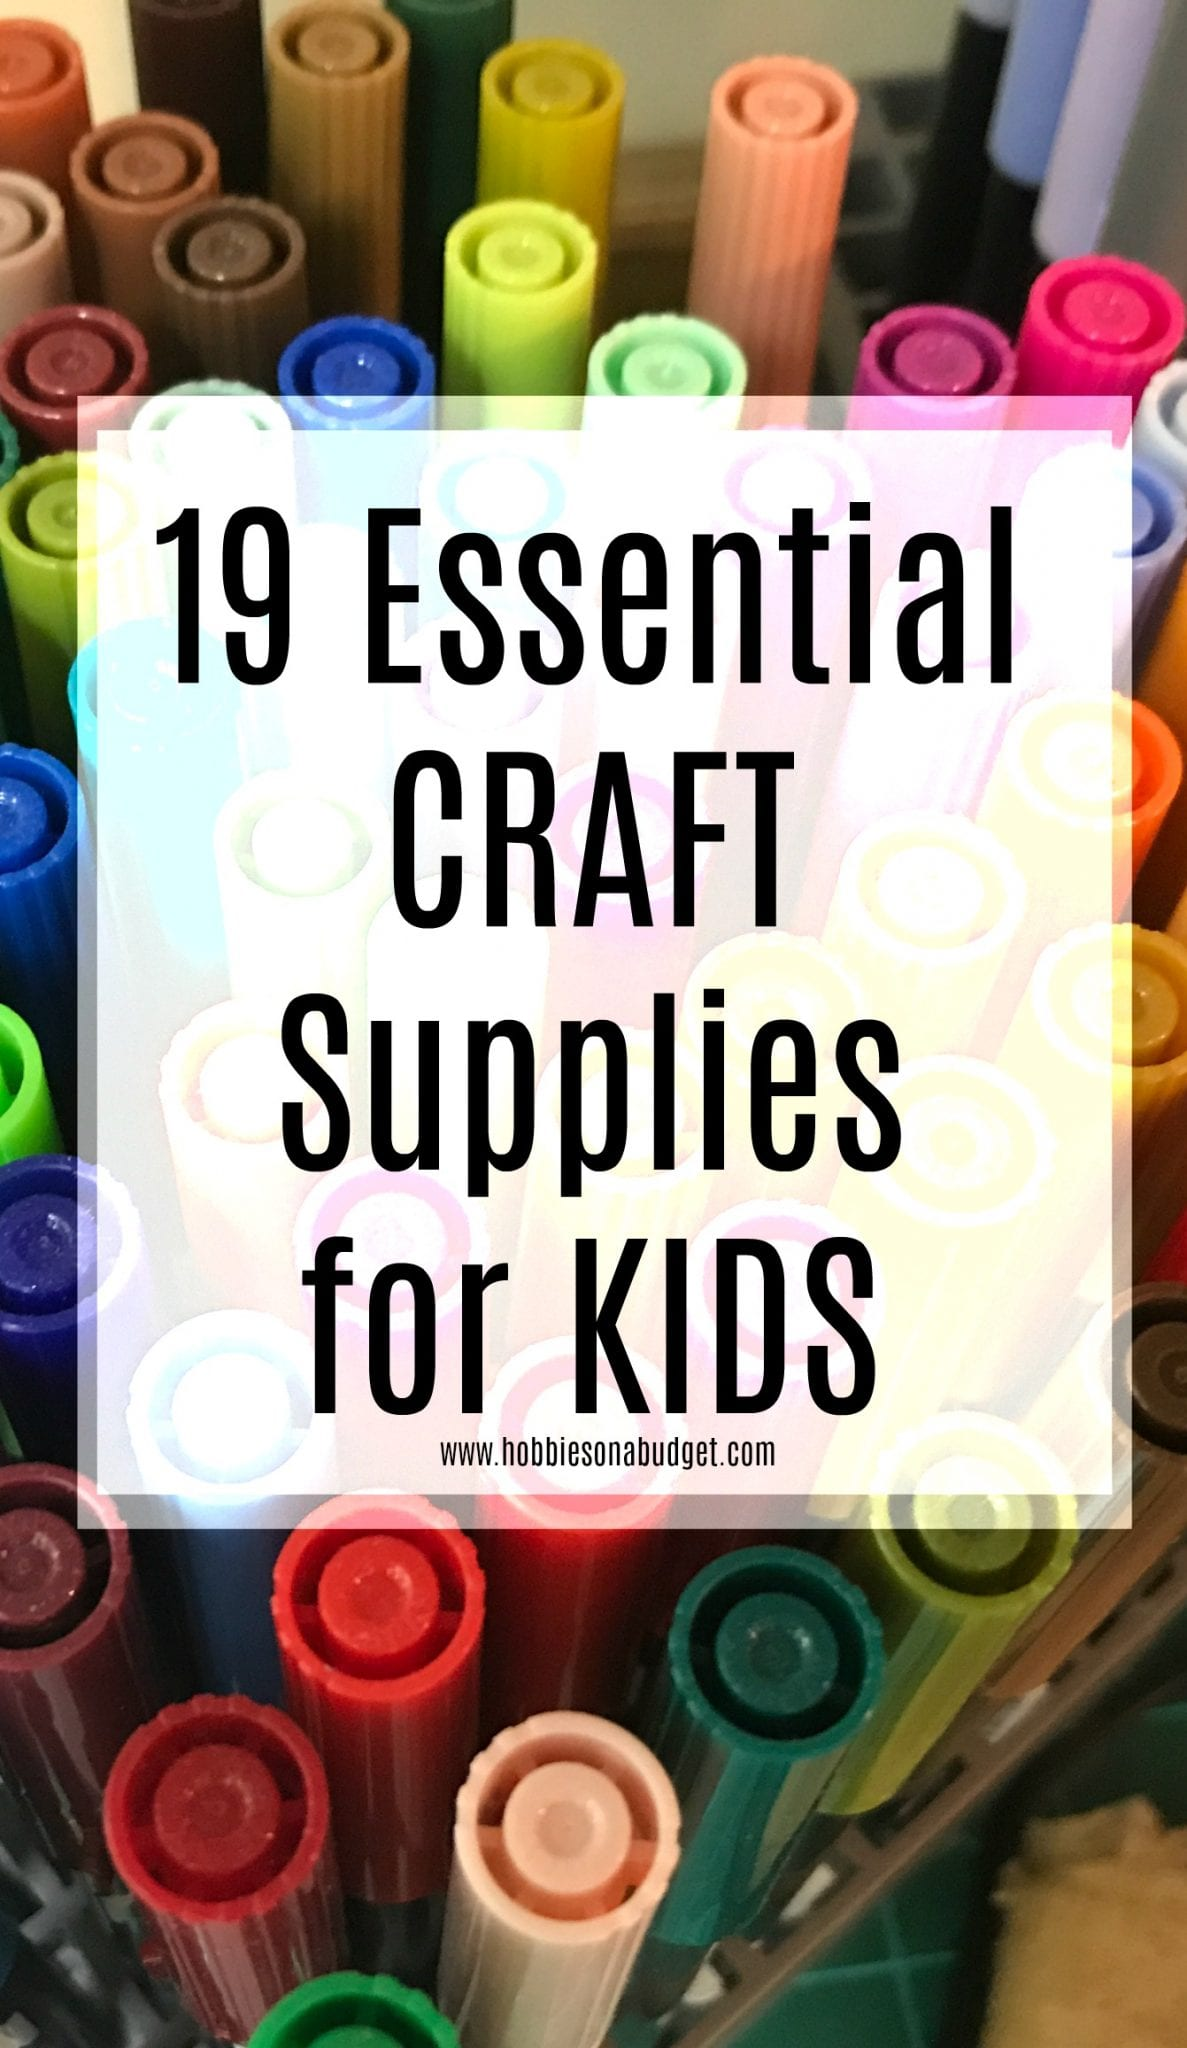 Whether it's a toddler needing to learn to finger paint, a kindergarten student who is ready for a family art project or a nephew who has been dropped off on a hot summer day, I've got the list of 19 essential craft supplies every family should have on hand.